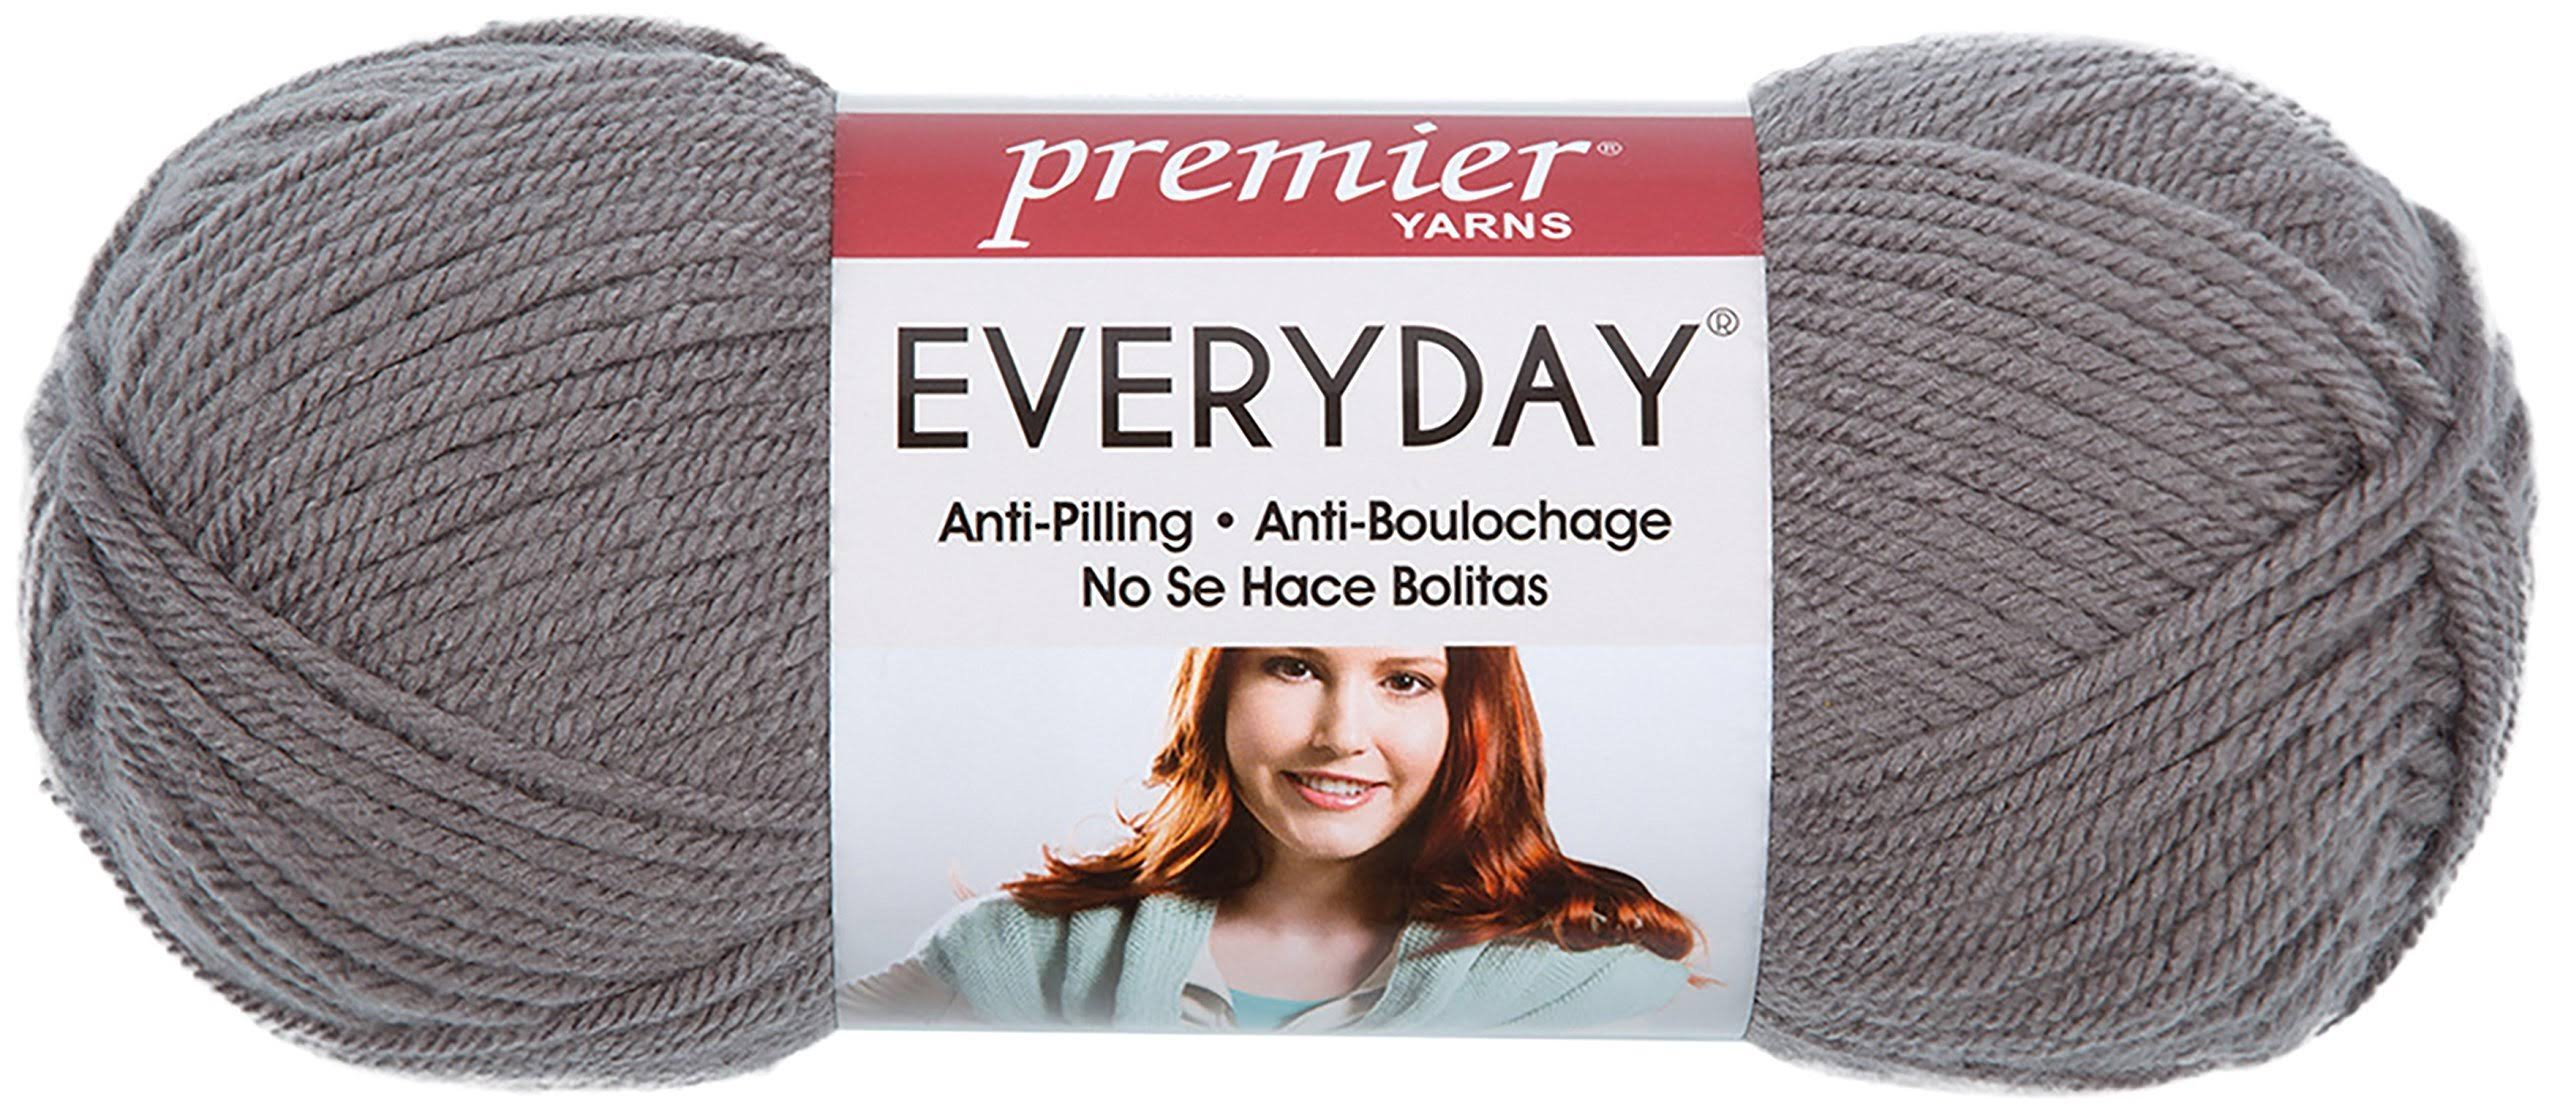 Premier Yarns Everyday Solid Yarn - Steel, 339g, 557m